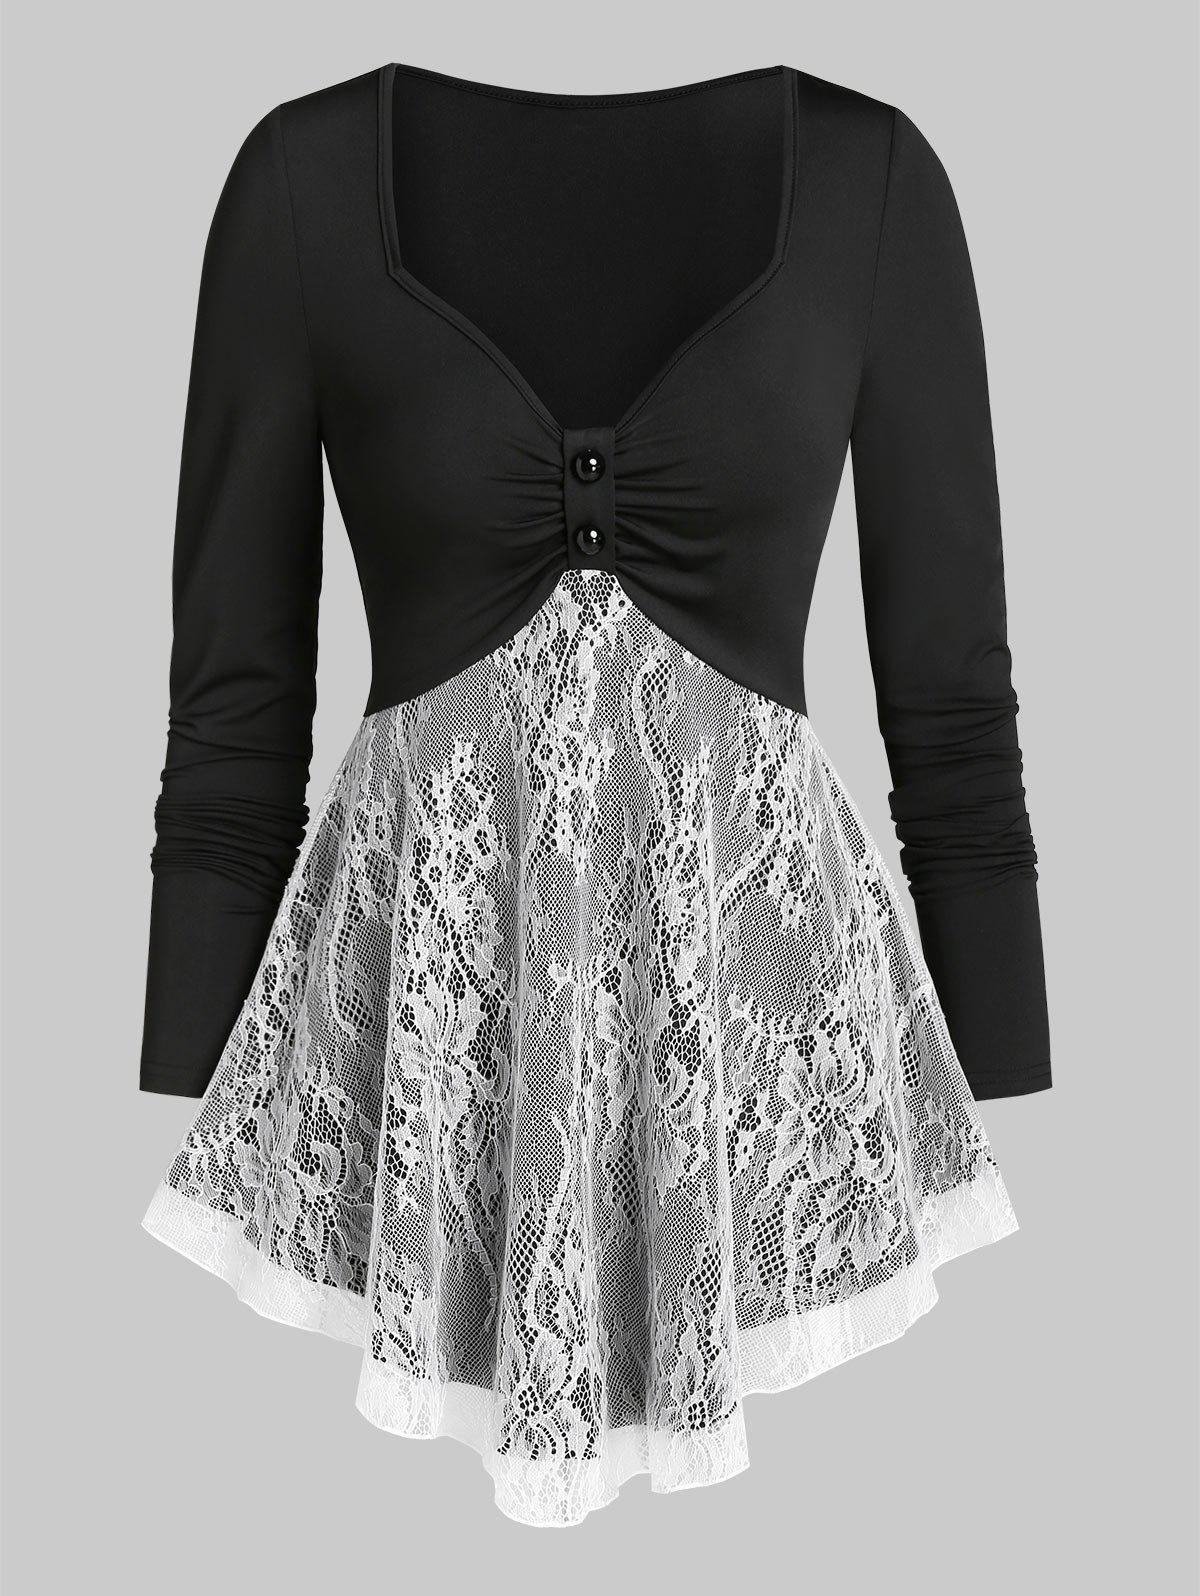 Sweetheart Neck Lace Insert Ruched Long Sleeve T Shirt - BLACK 3XL